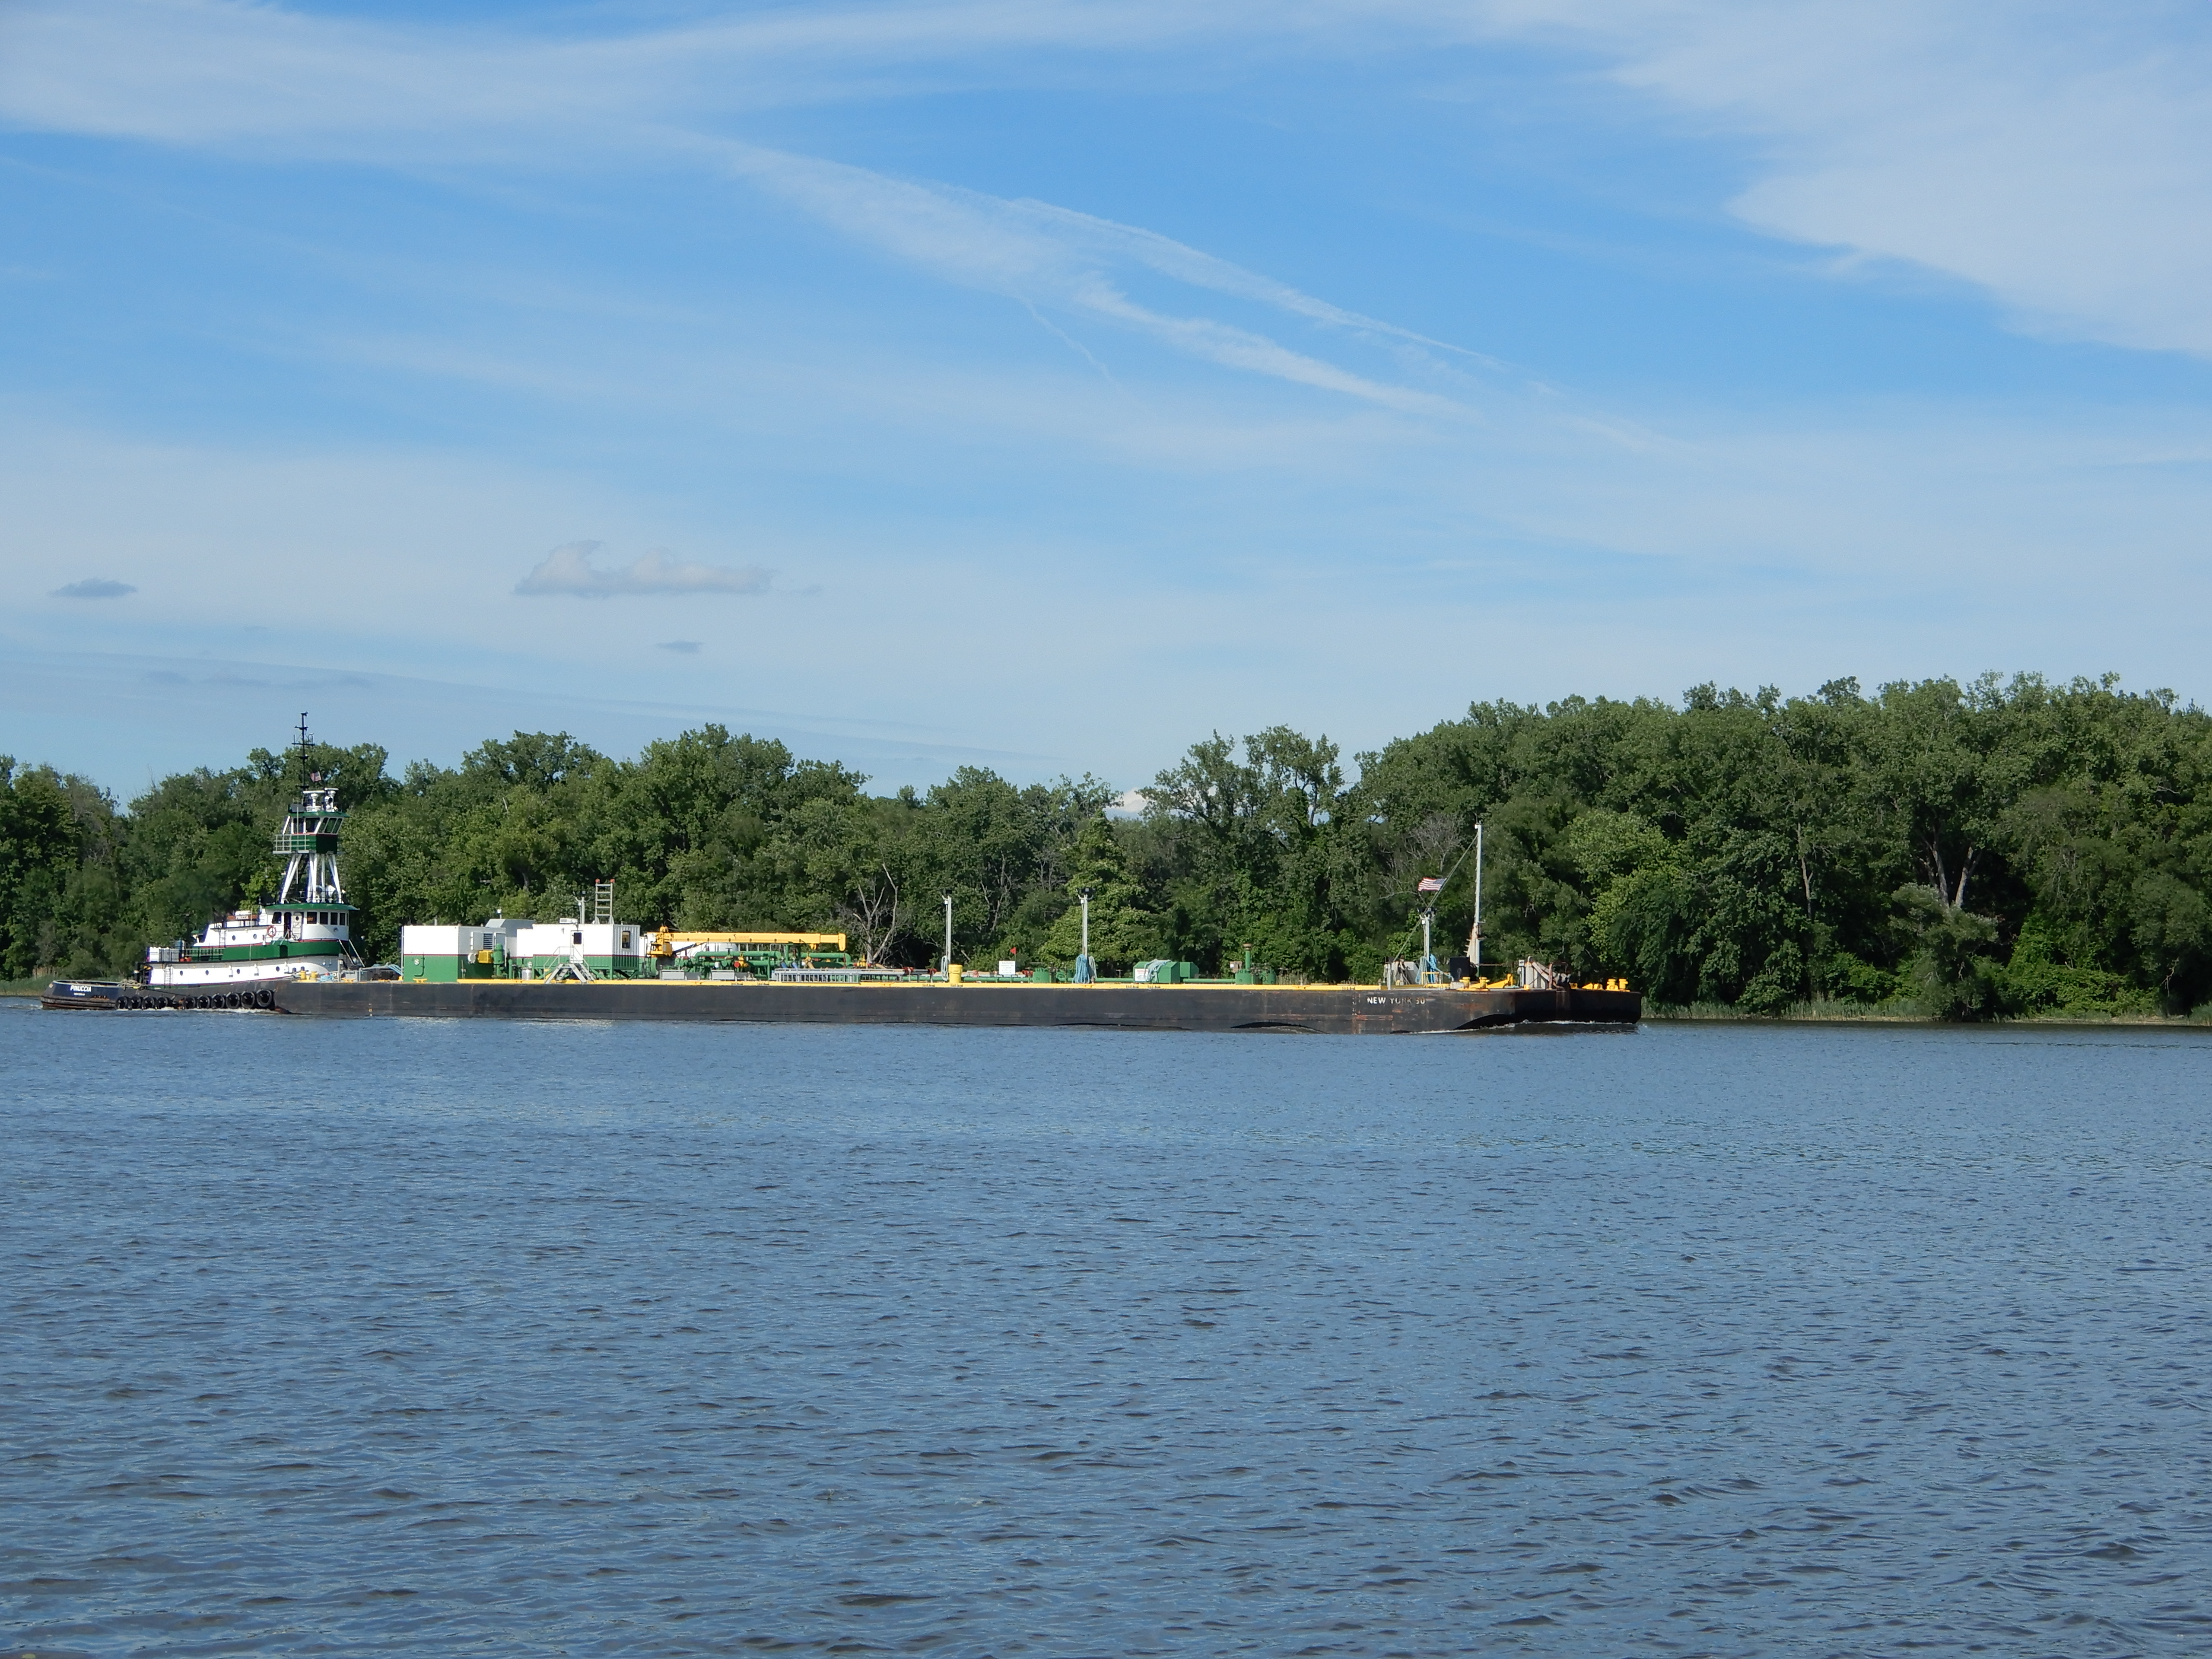 Southbound fuel barge